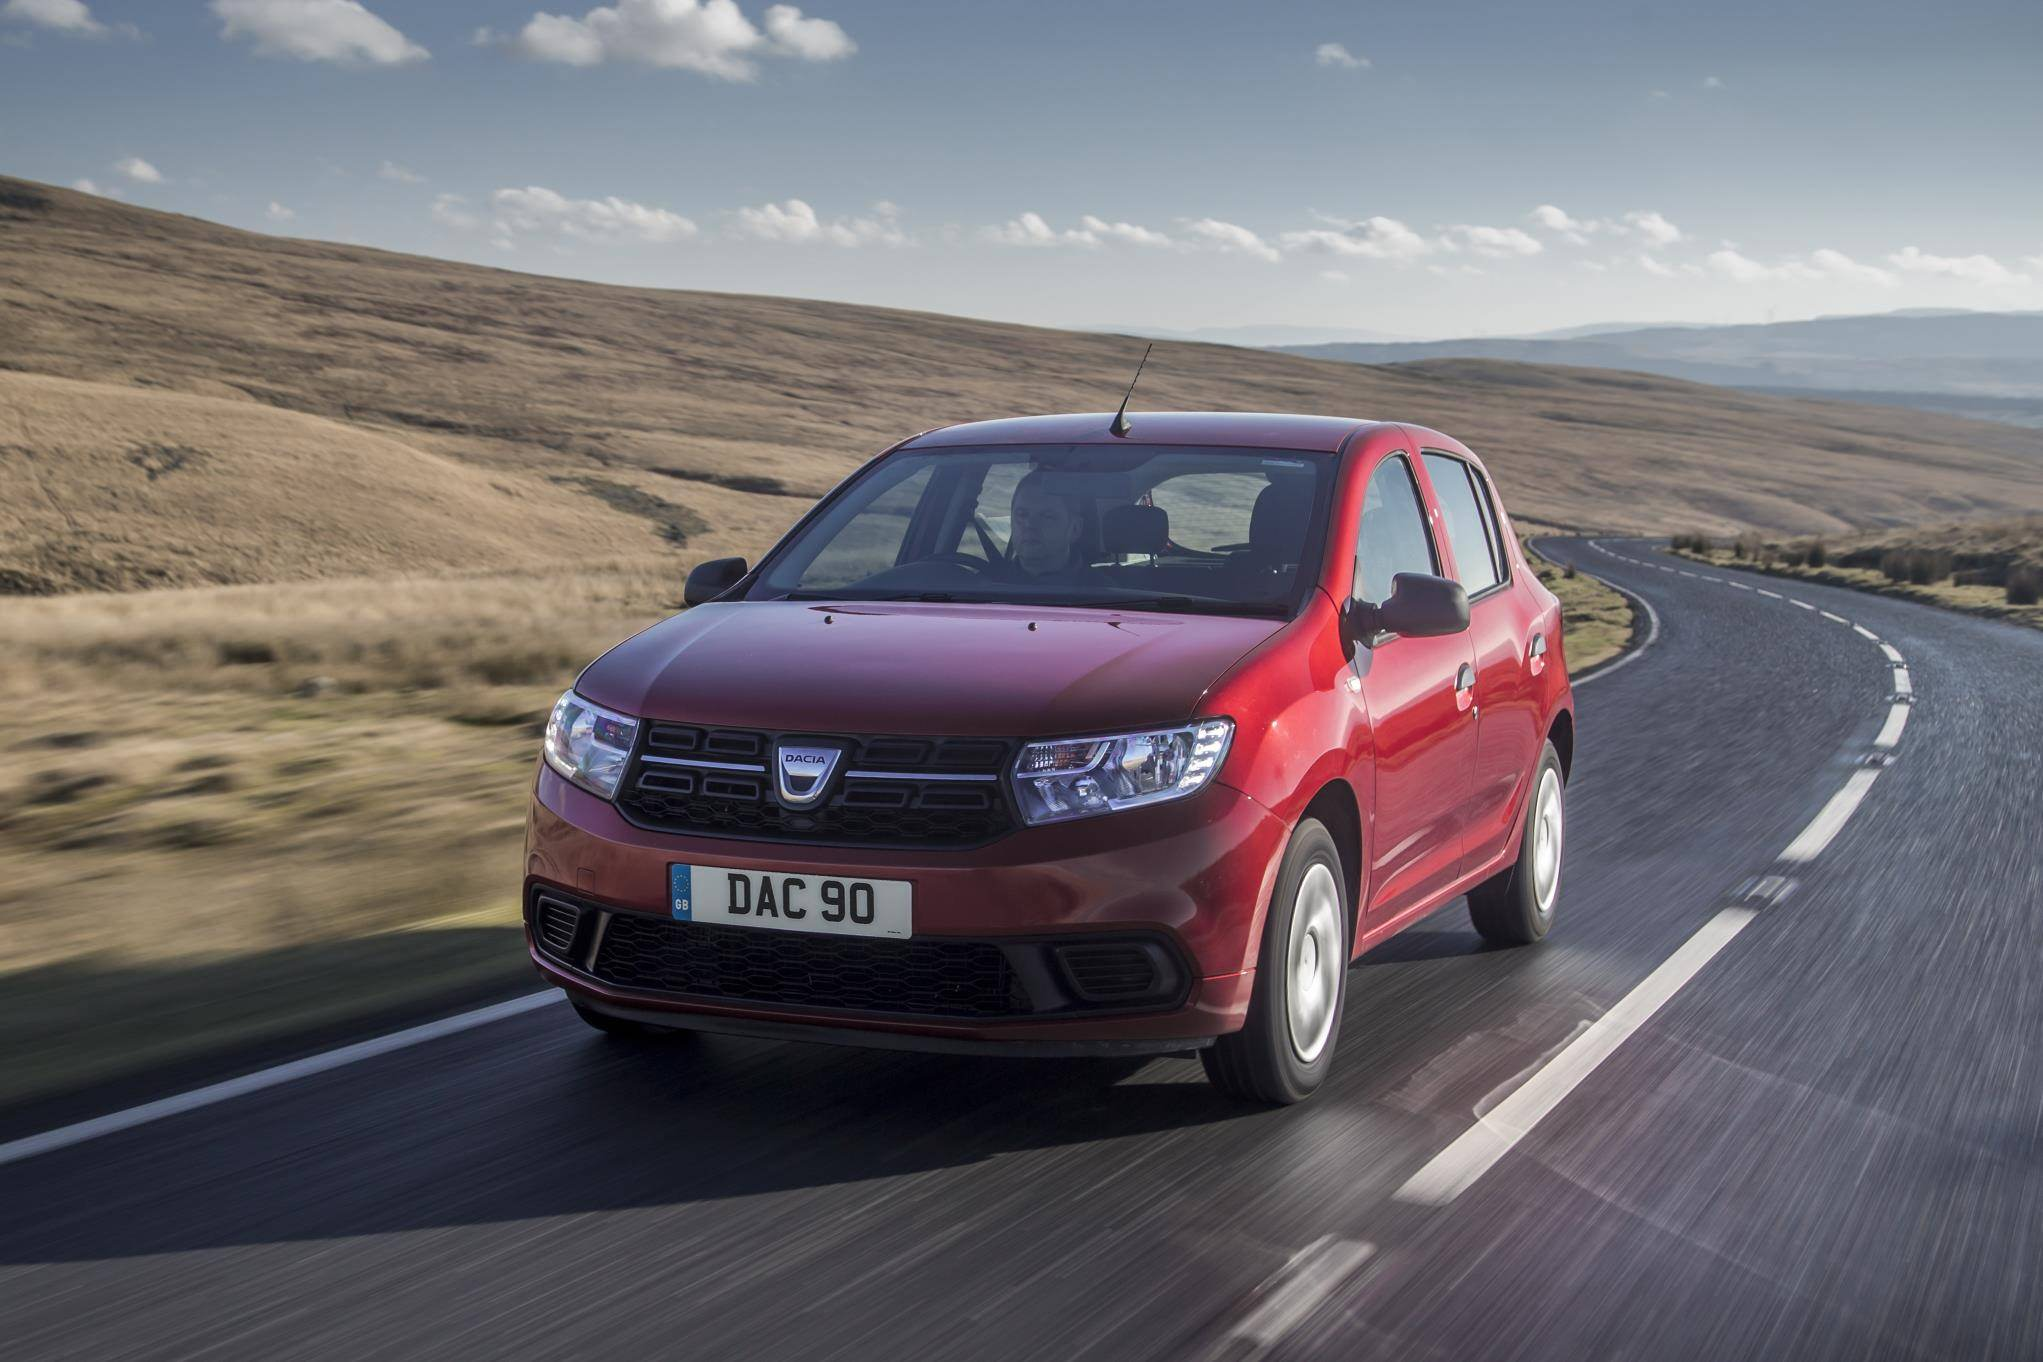 Red Renault Sandero driving along a country lane